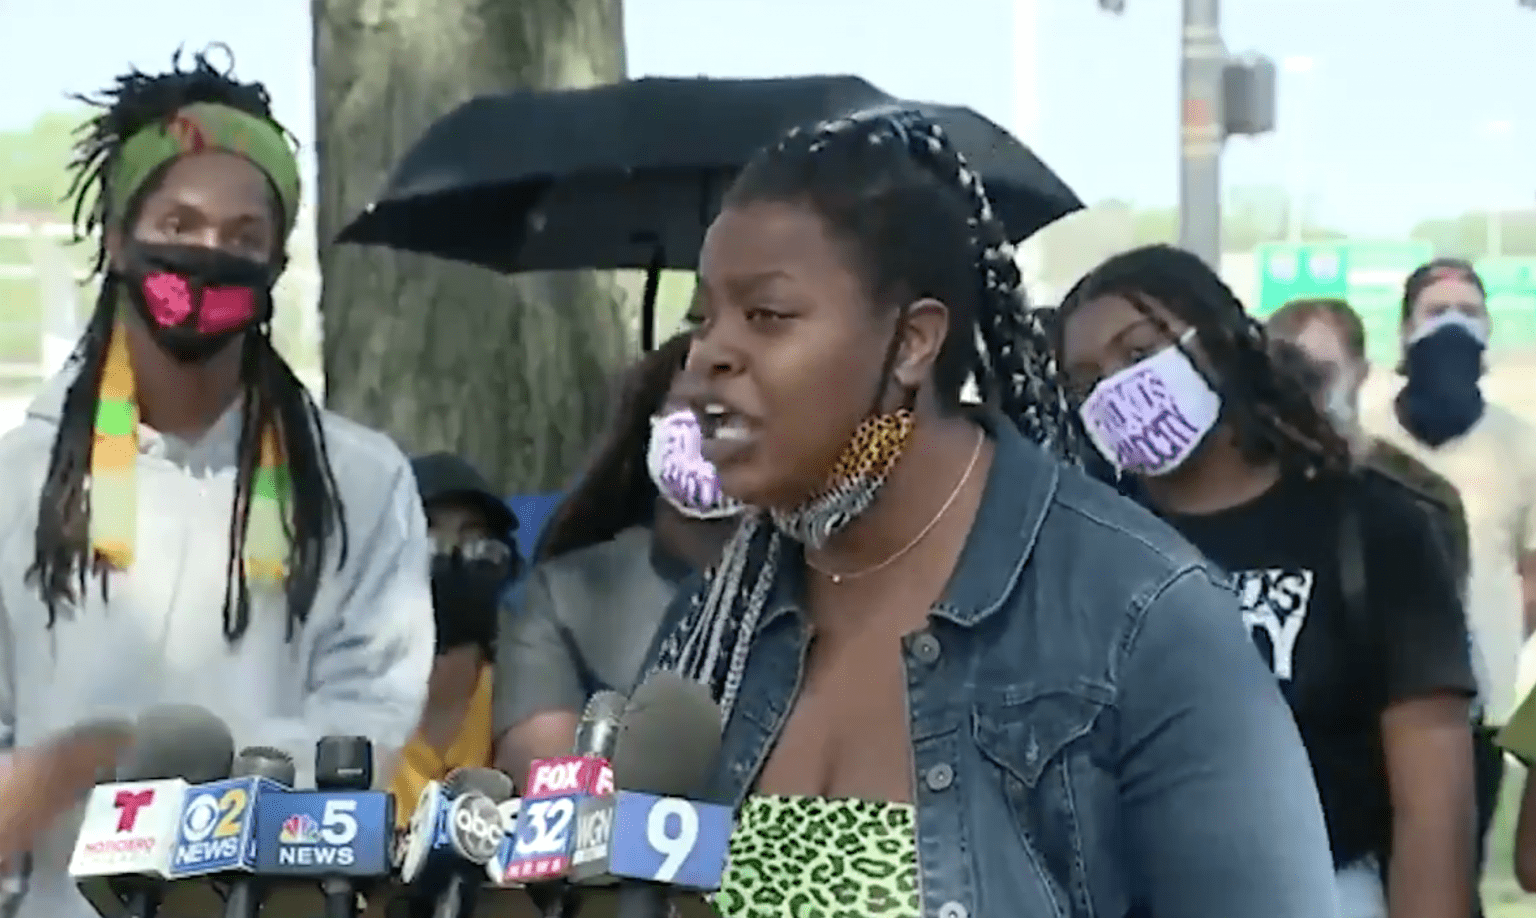 Black Lives Matter makes demands in Chicago: 'Listen to us or you can just get ran over'